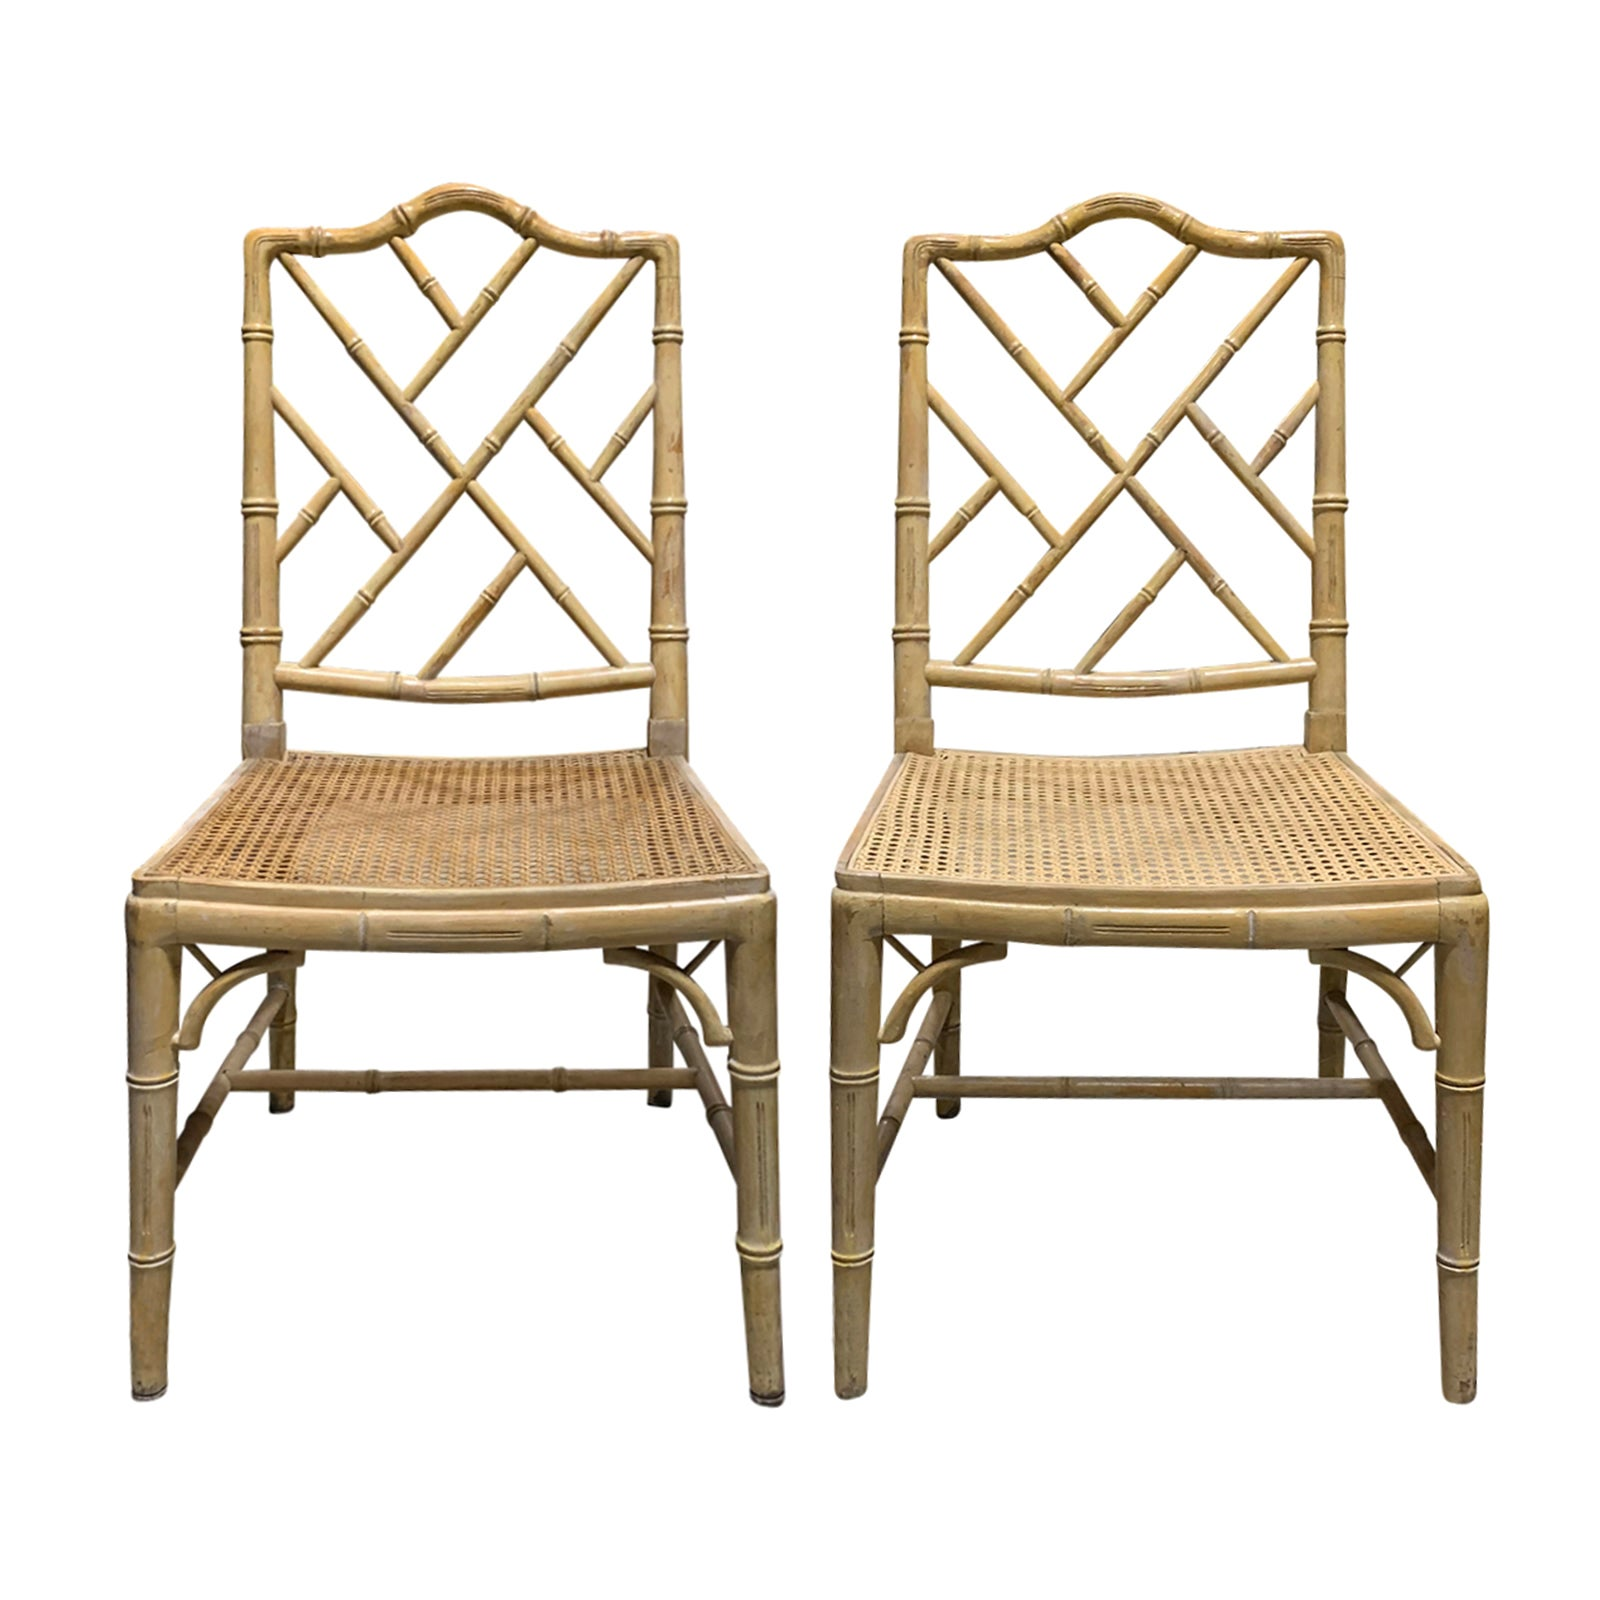 Pair of 20th Century Faux Bamboo Side Chairs with Cane Seats